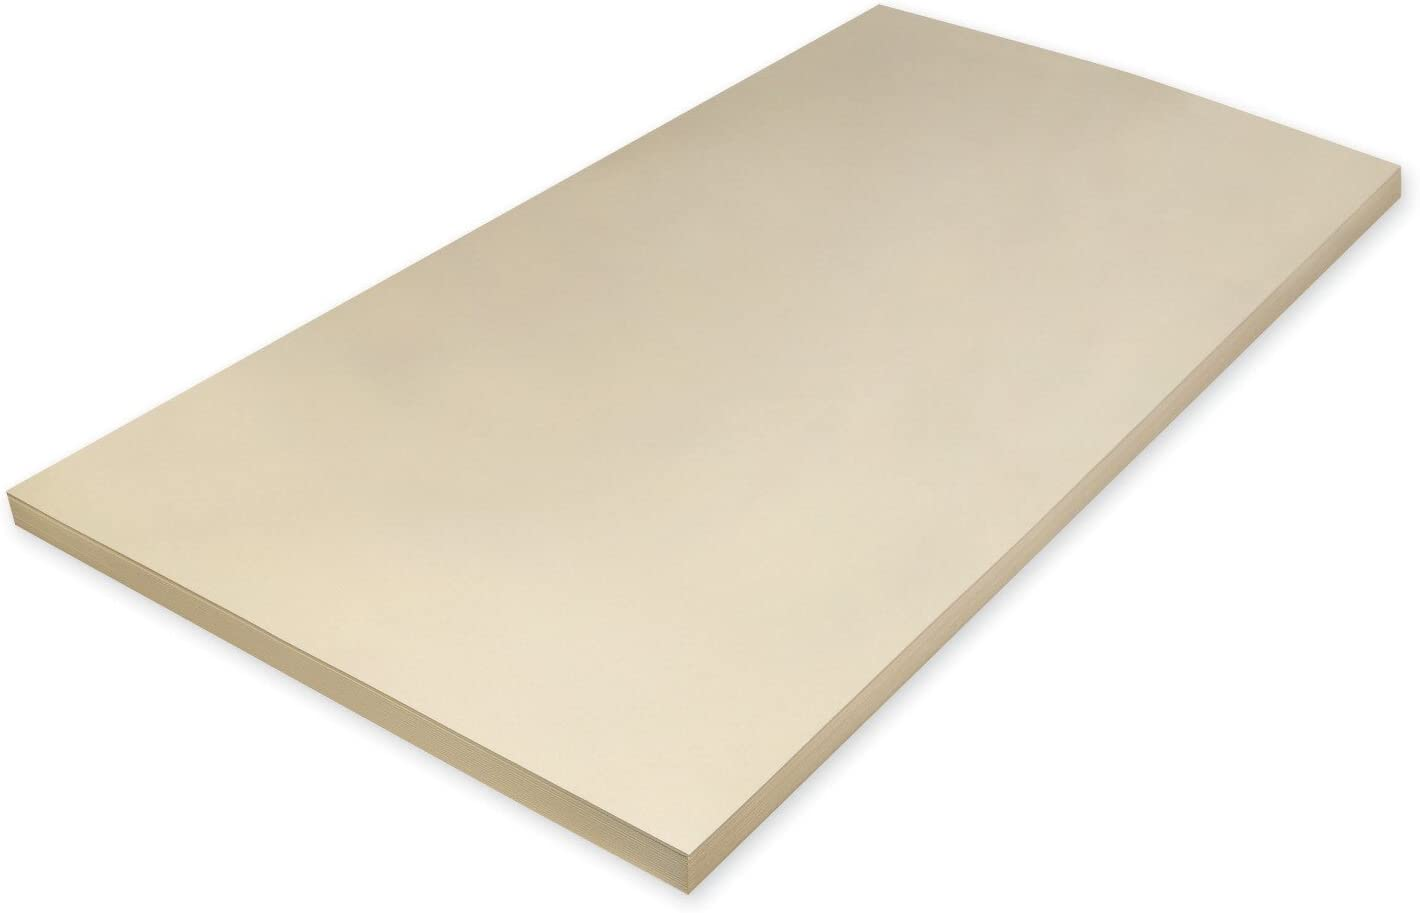 11.5 Pt Pack of 100 24 x 36 Inches White Pacon Super Heavyweight Tagboard